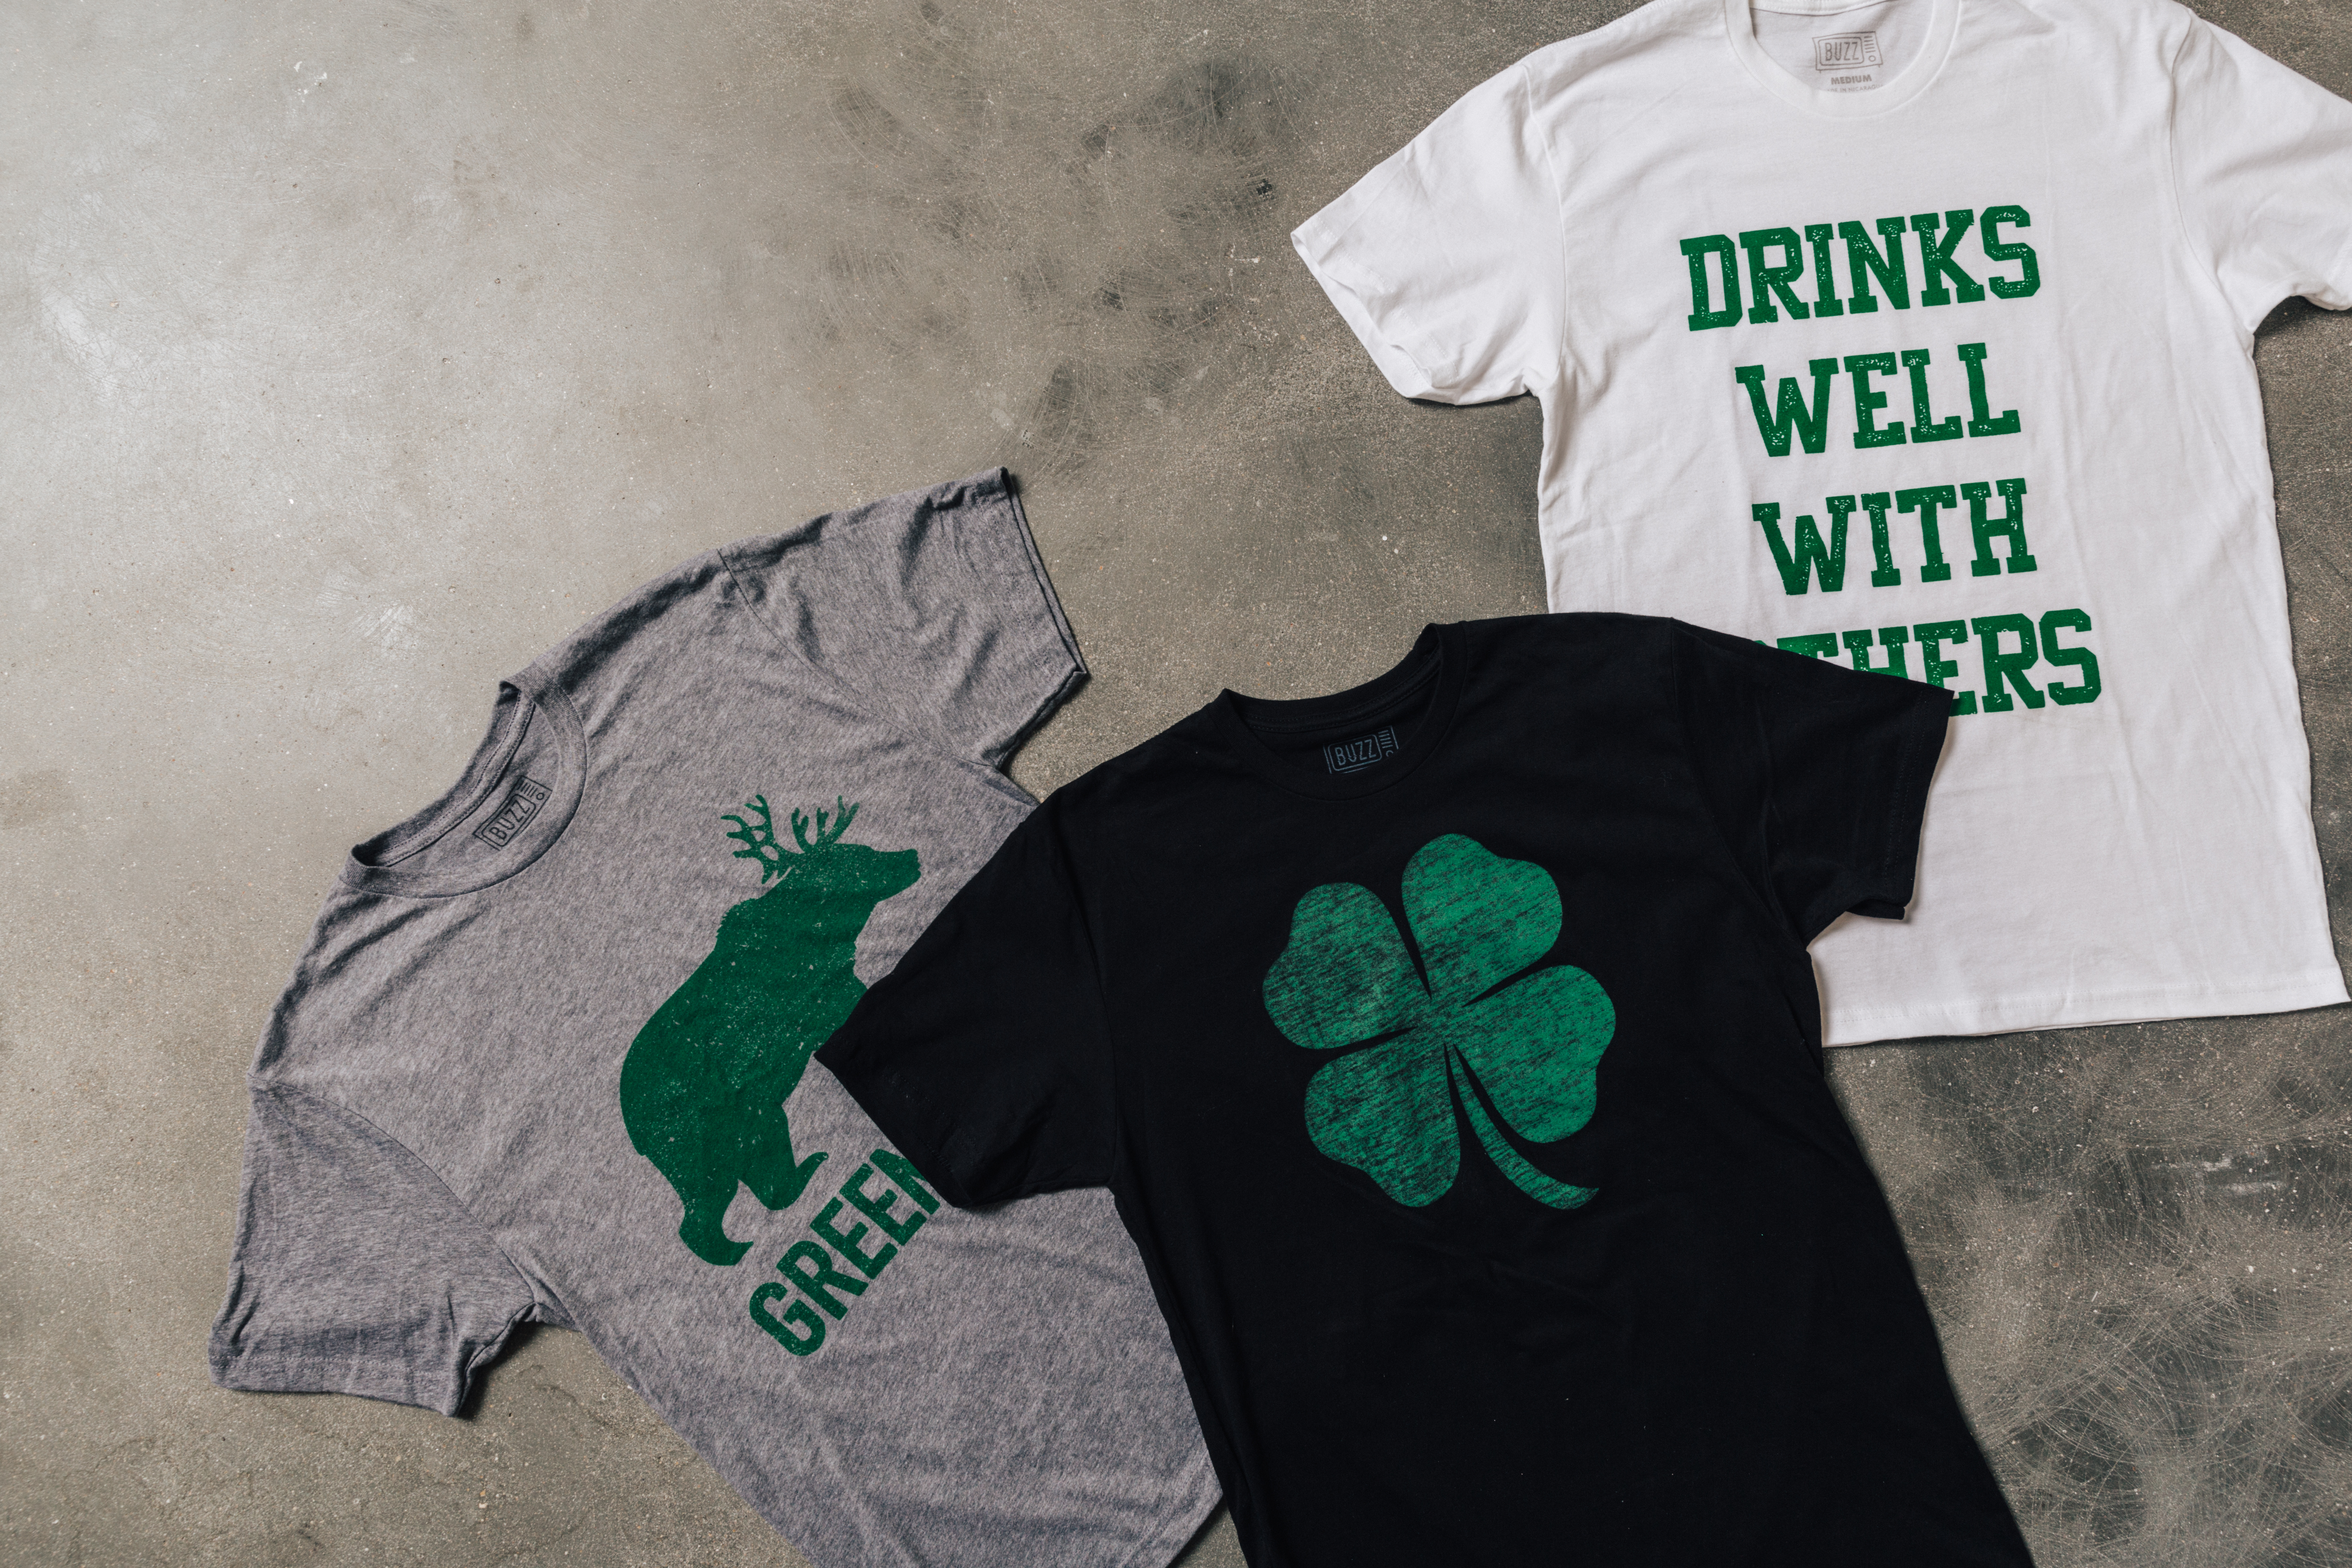 men's drinking tees with green color scheme